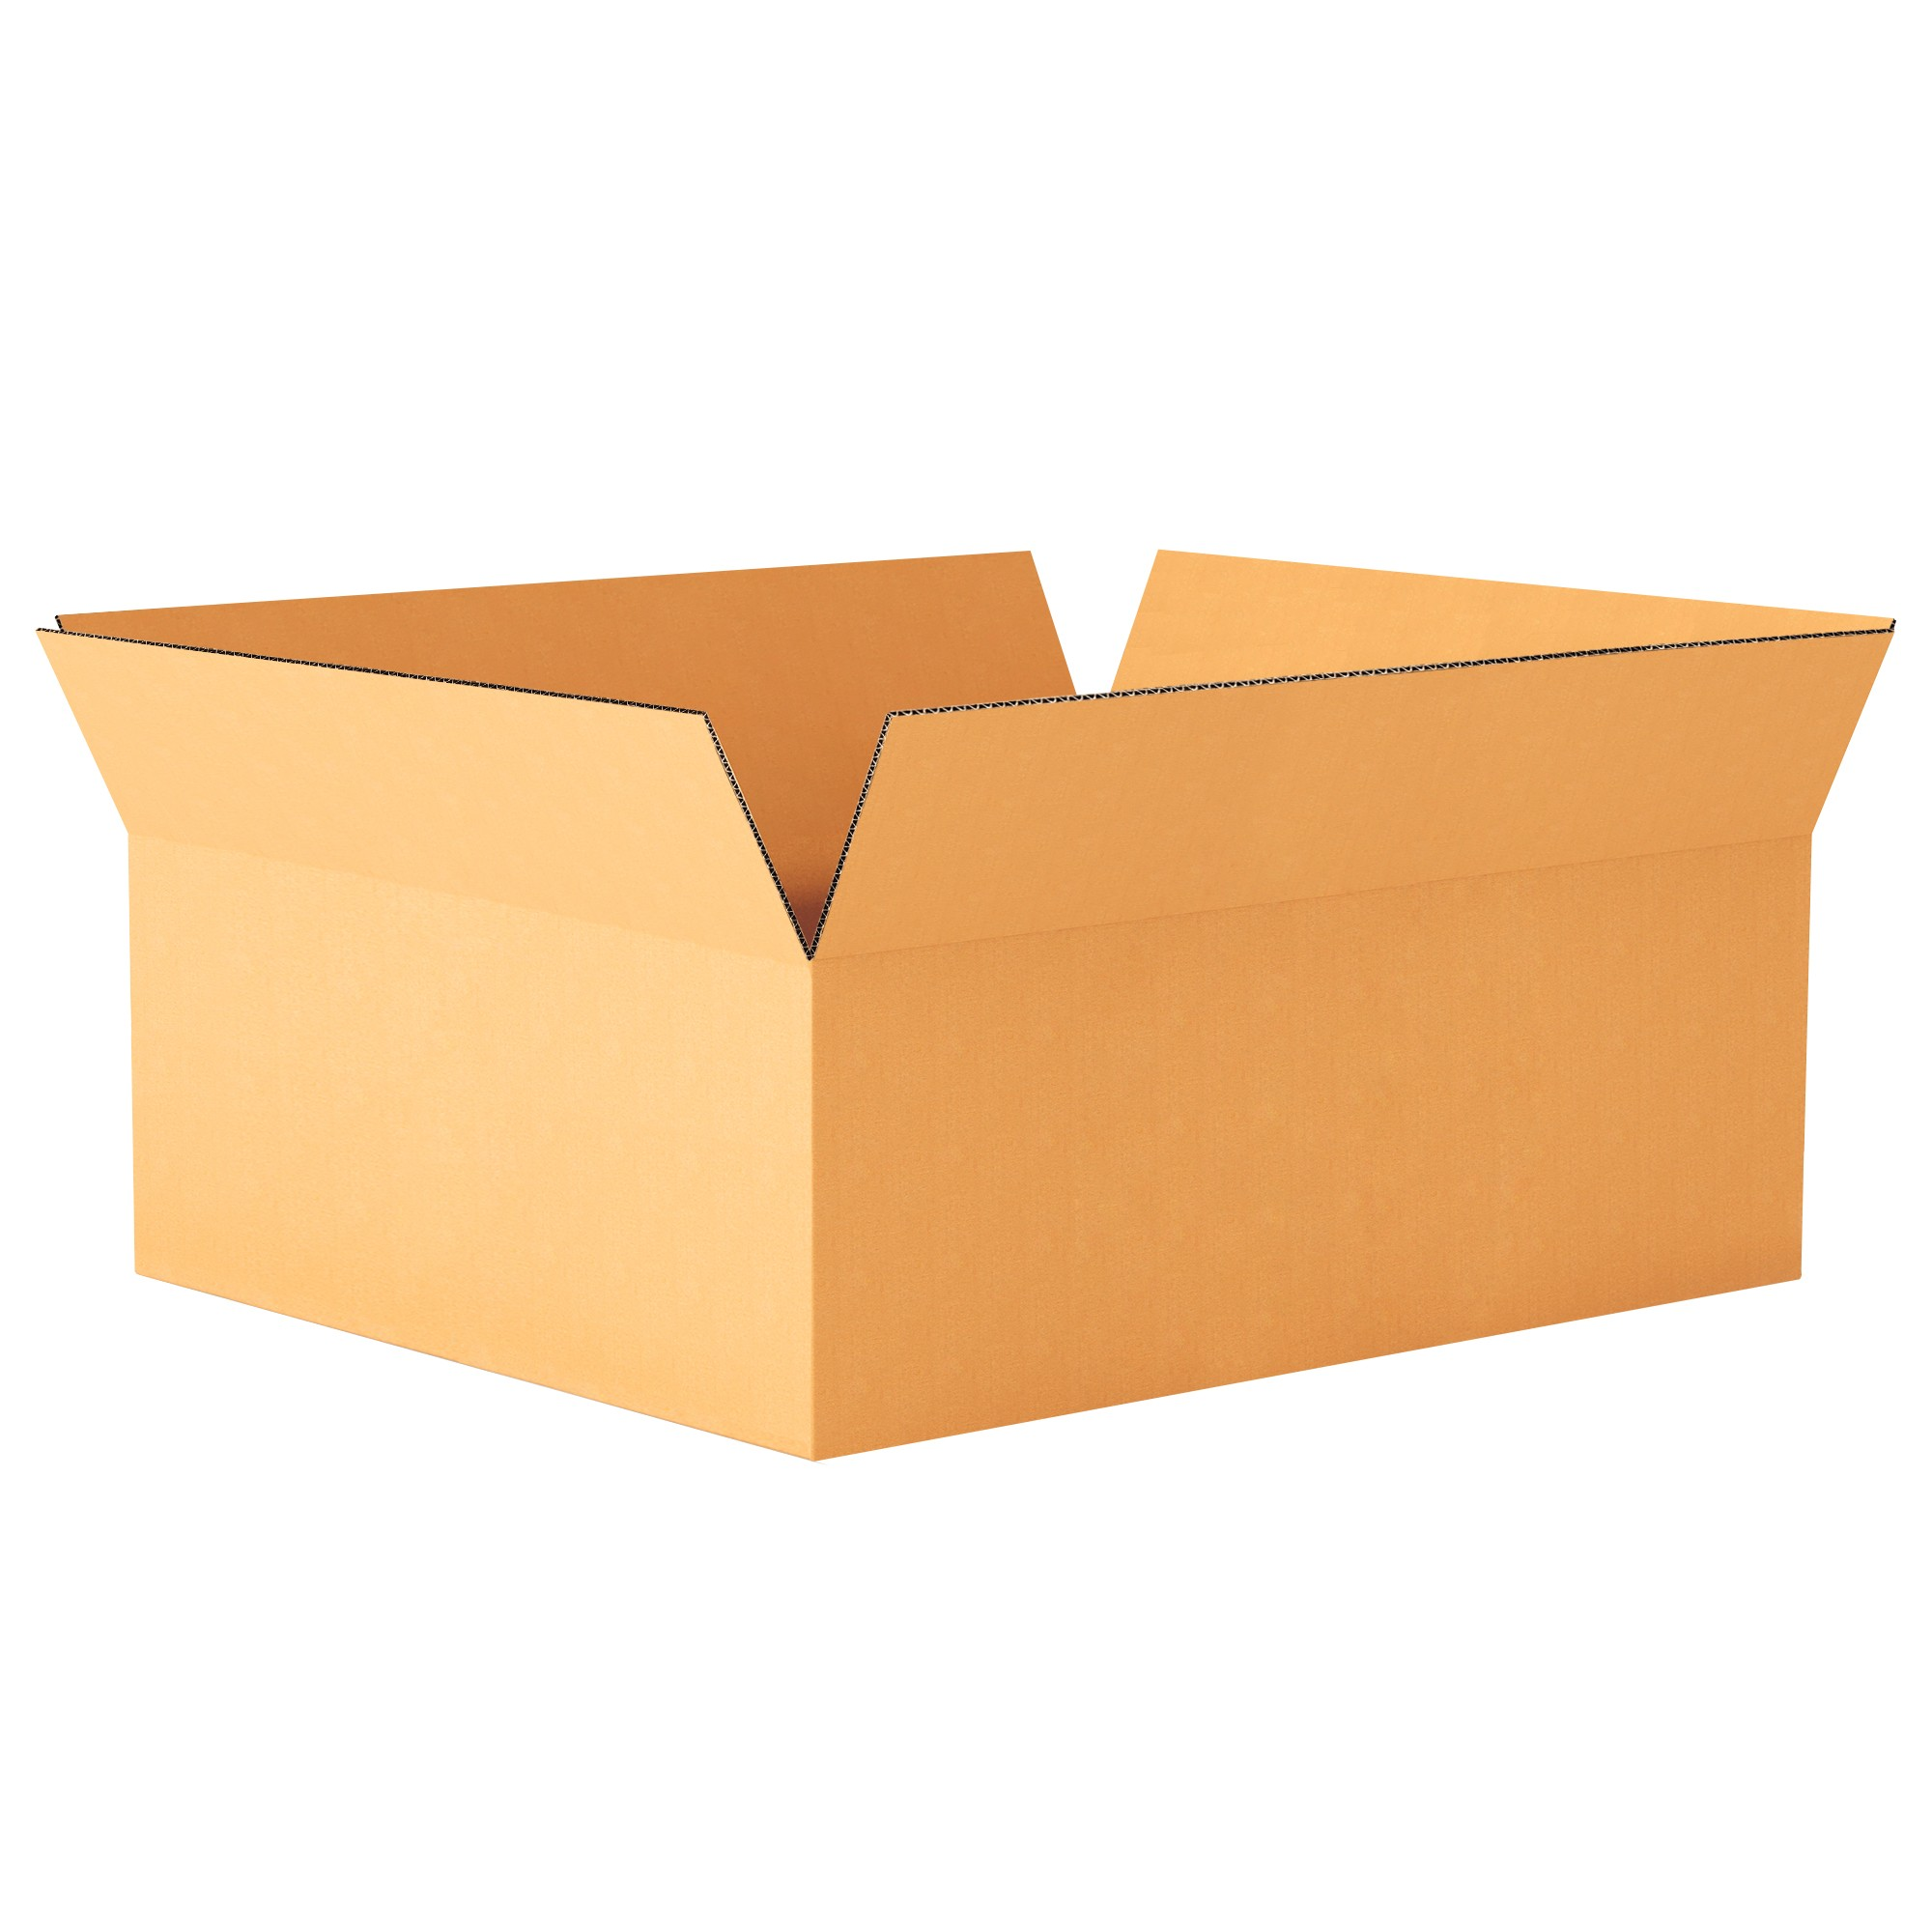 """TOTALPACK® 20 x 12 x 6"""" Single Wall Corrugated Boxes 25 Units"""